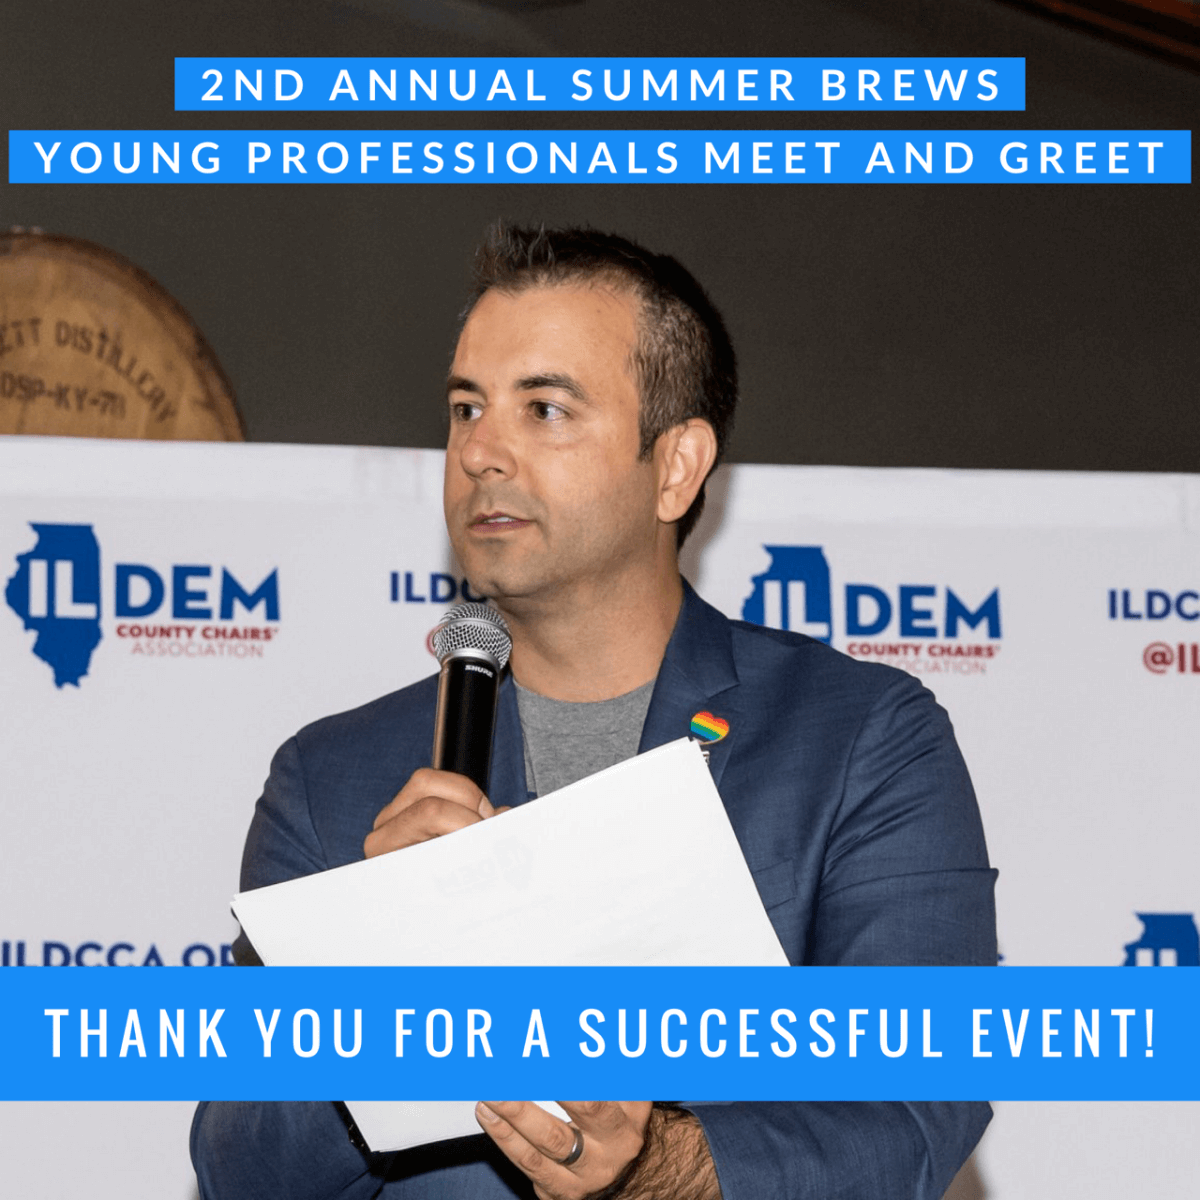 SUMMER BREWS TO HELP GET DEMOCRATS ELECTED